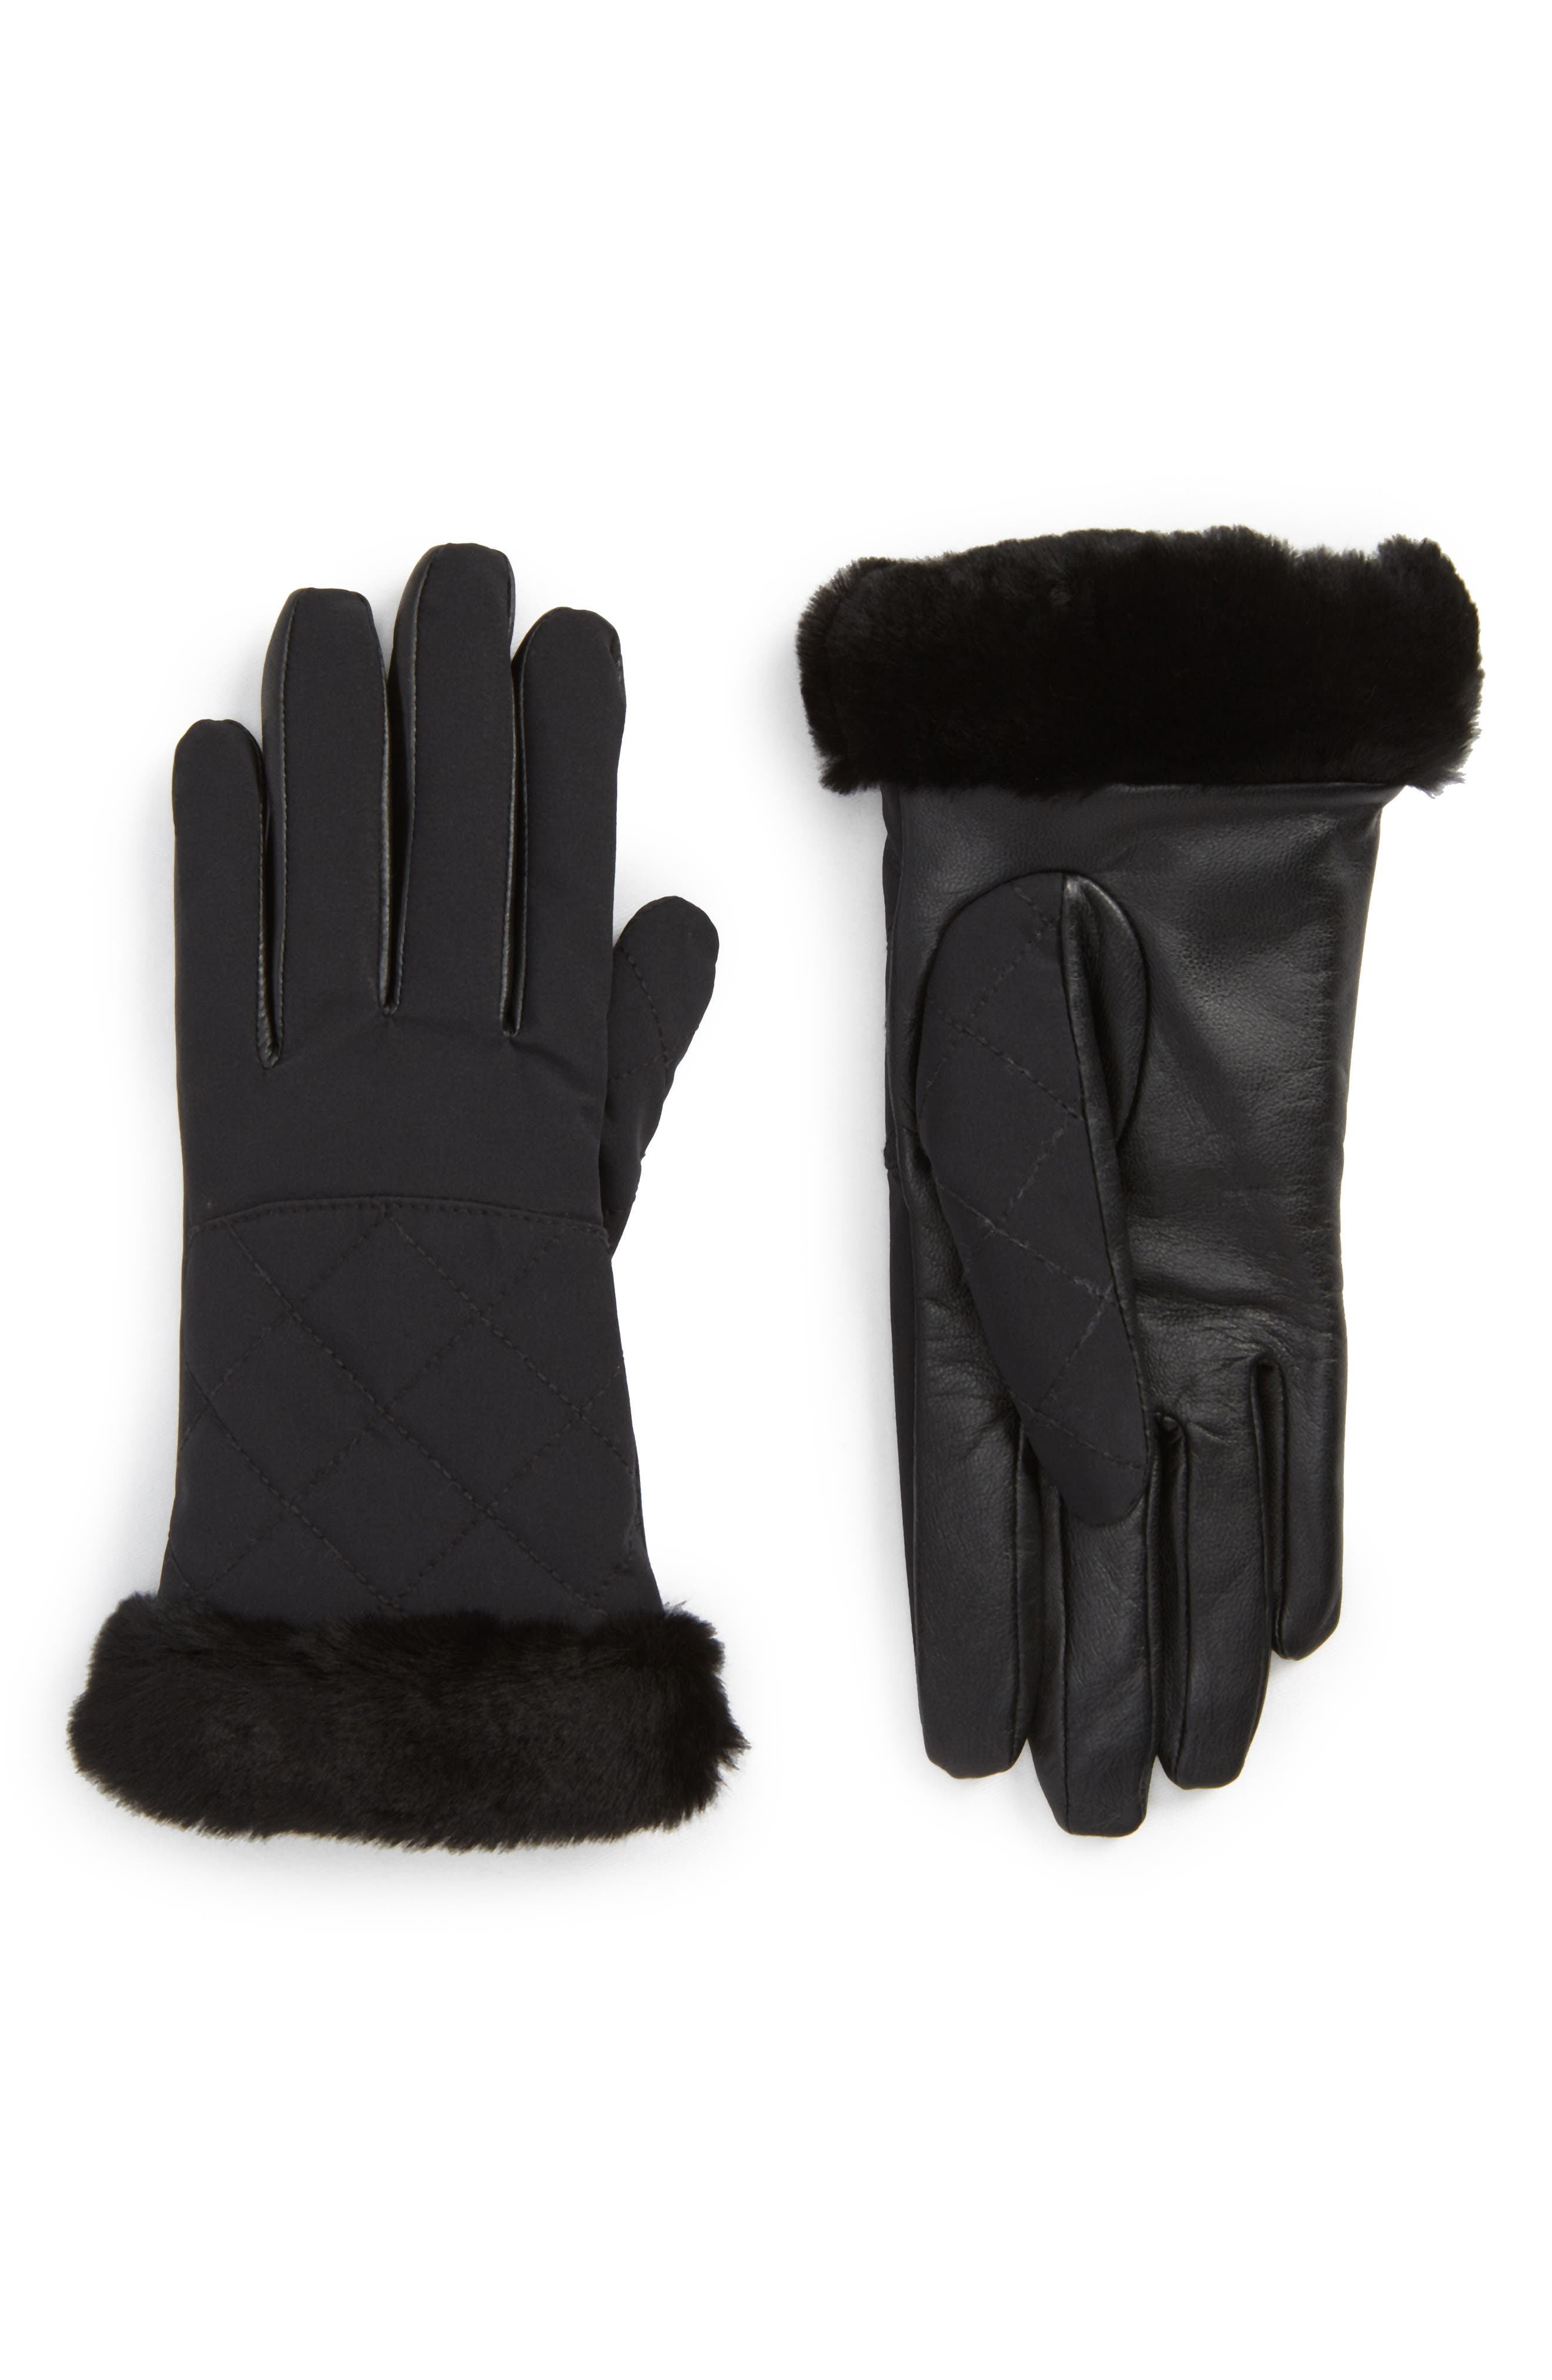 UGG<sup>®</sup> Water Resistant Touchscreen Quilted Nylon, Leather & Genuine Shearling Gloves,                             Main thumbnail 1, color,